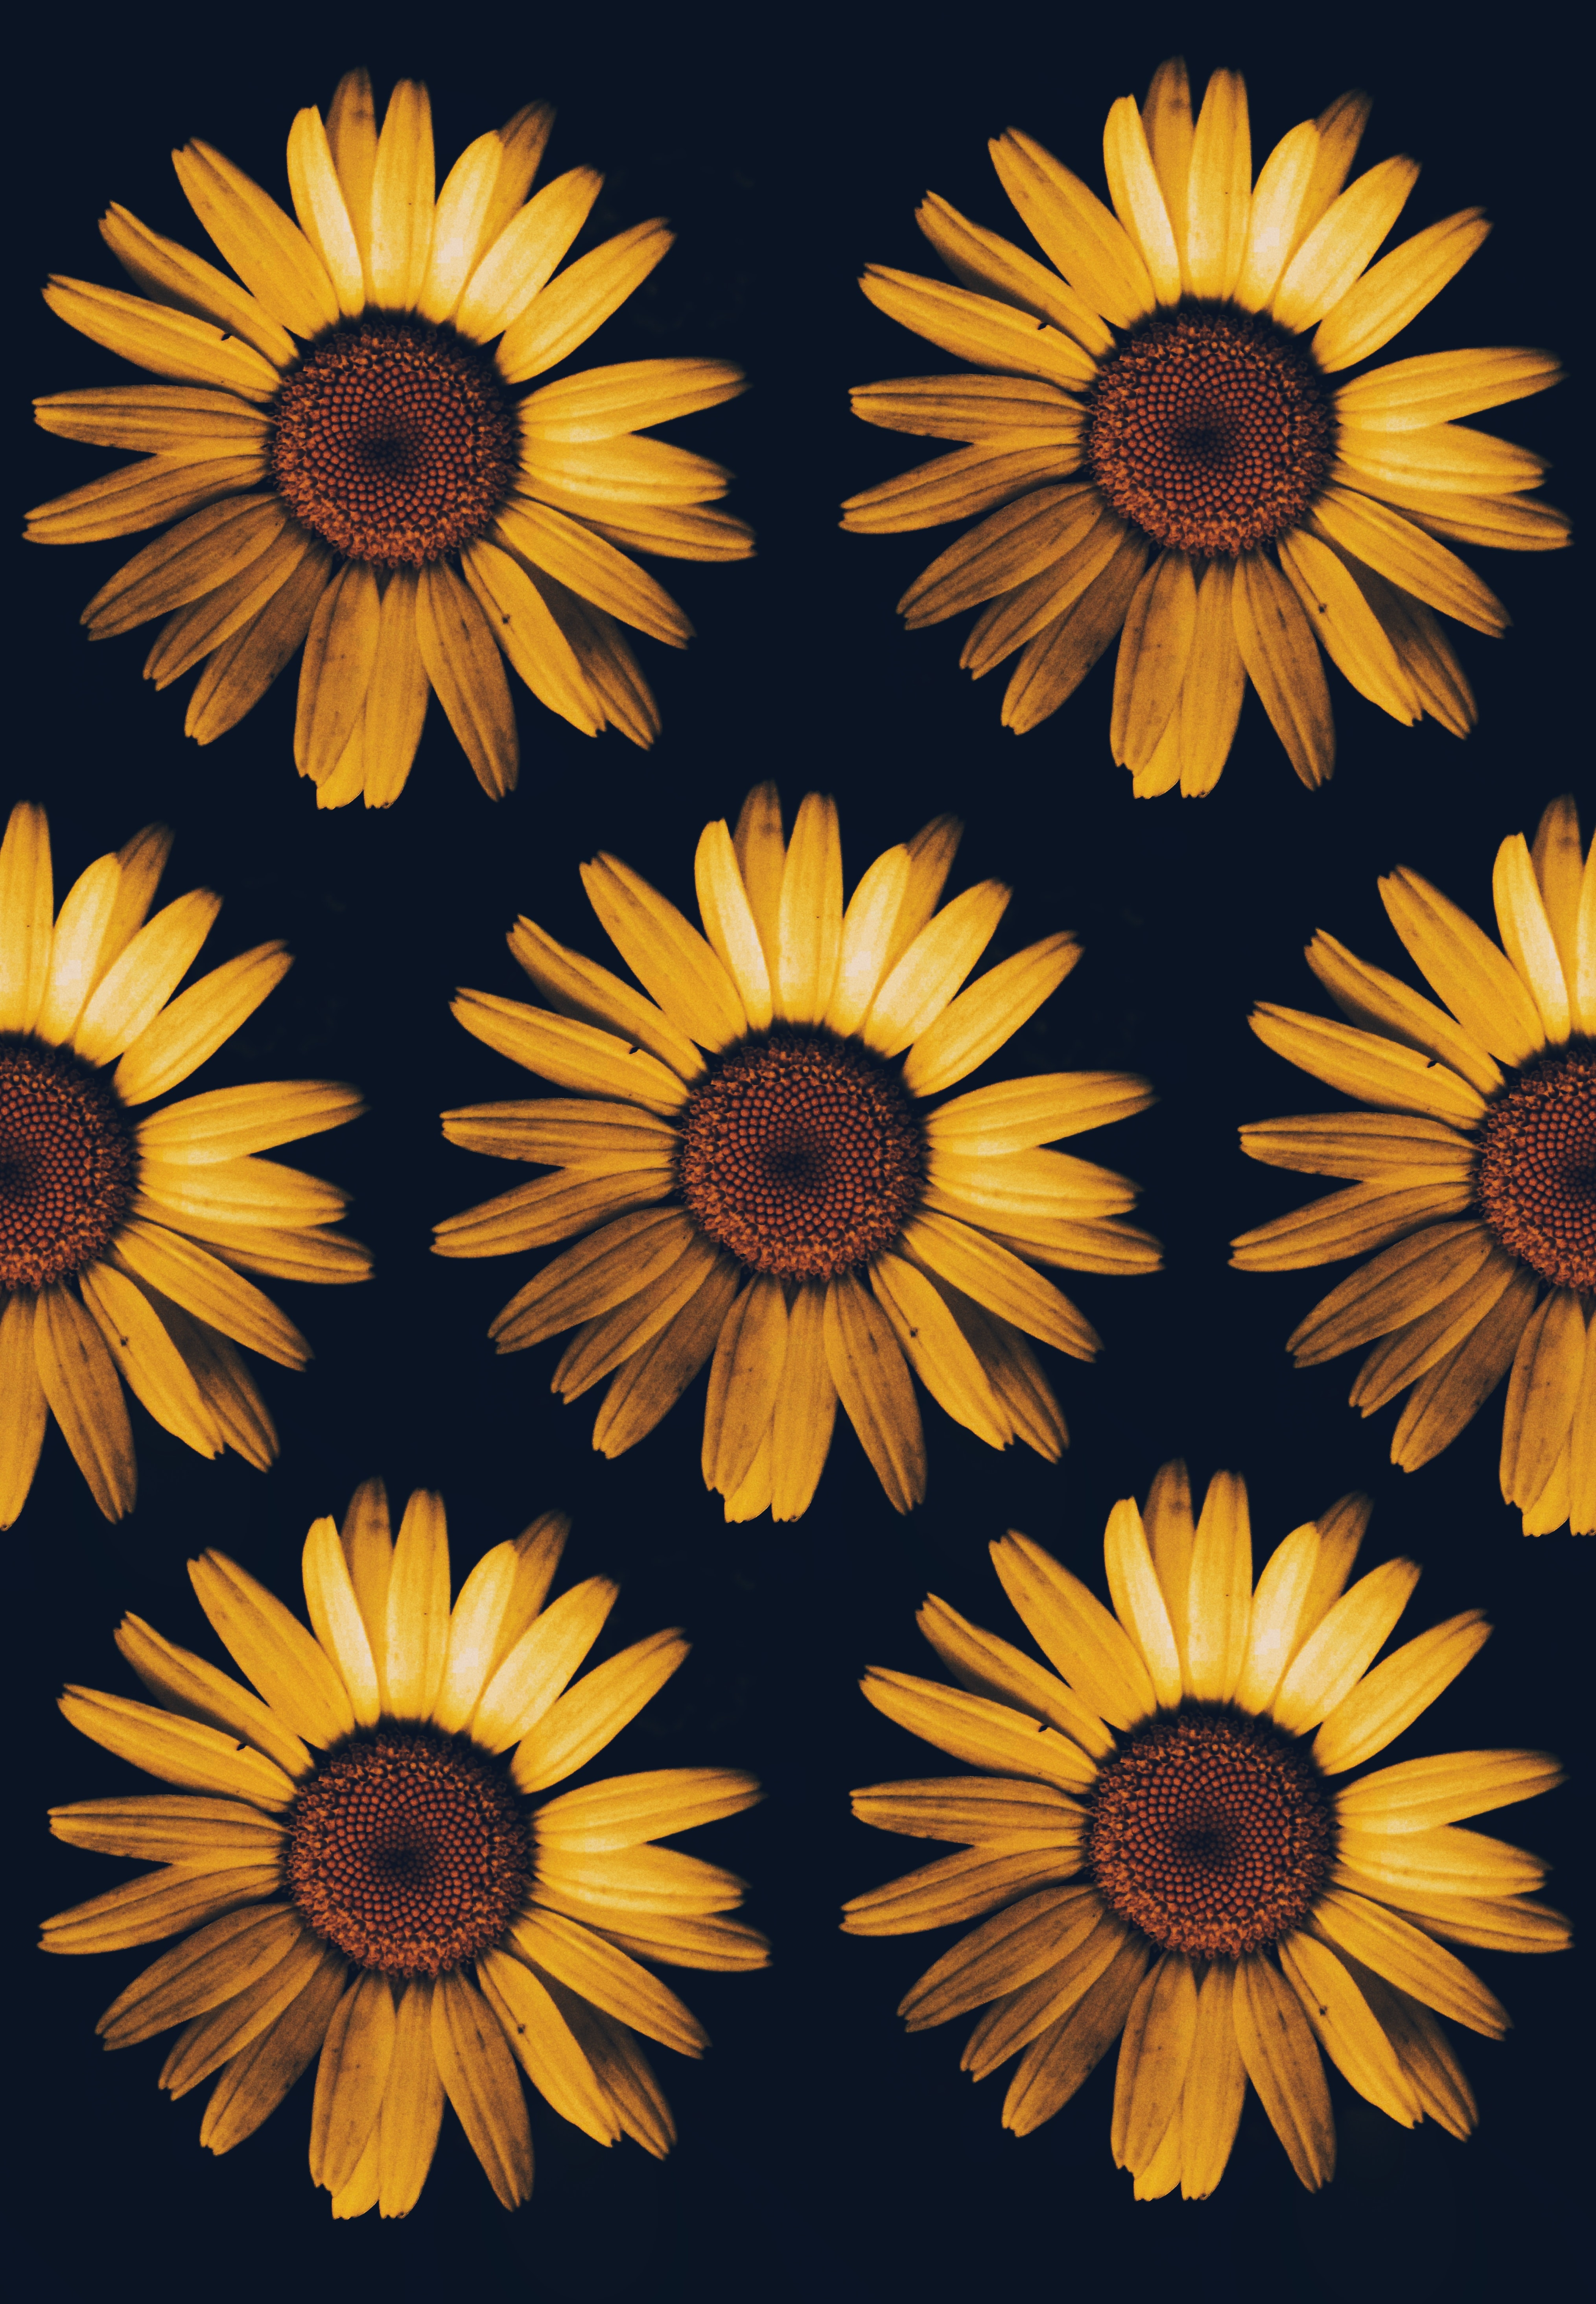 Sunflower Pictures HQ Download Free Images on